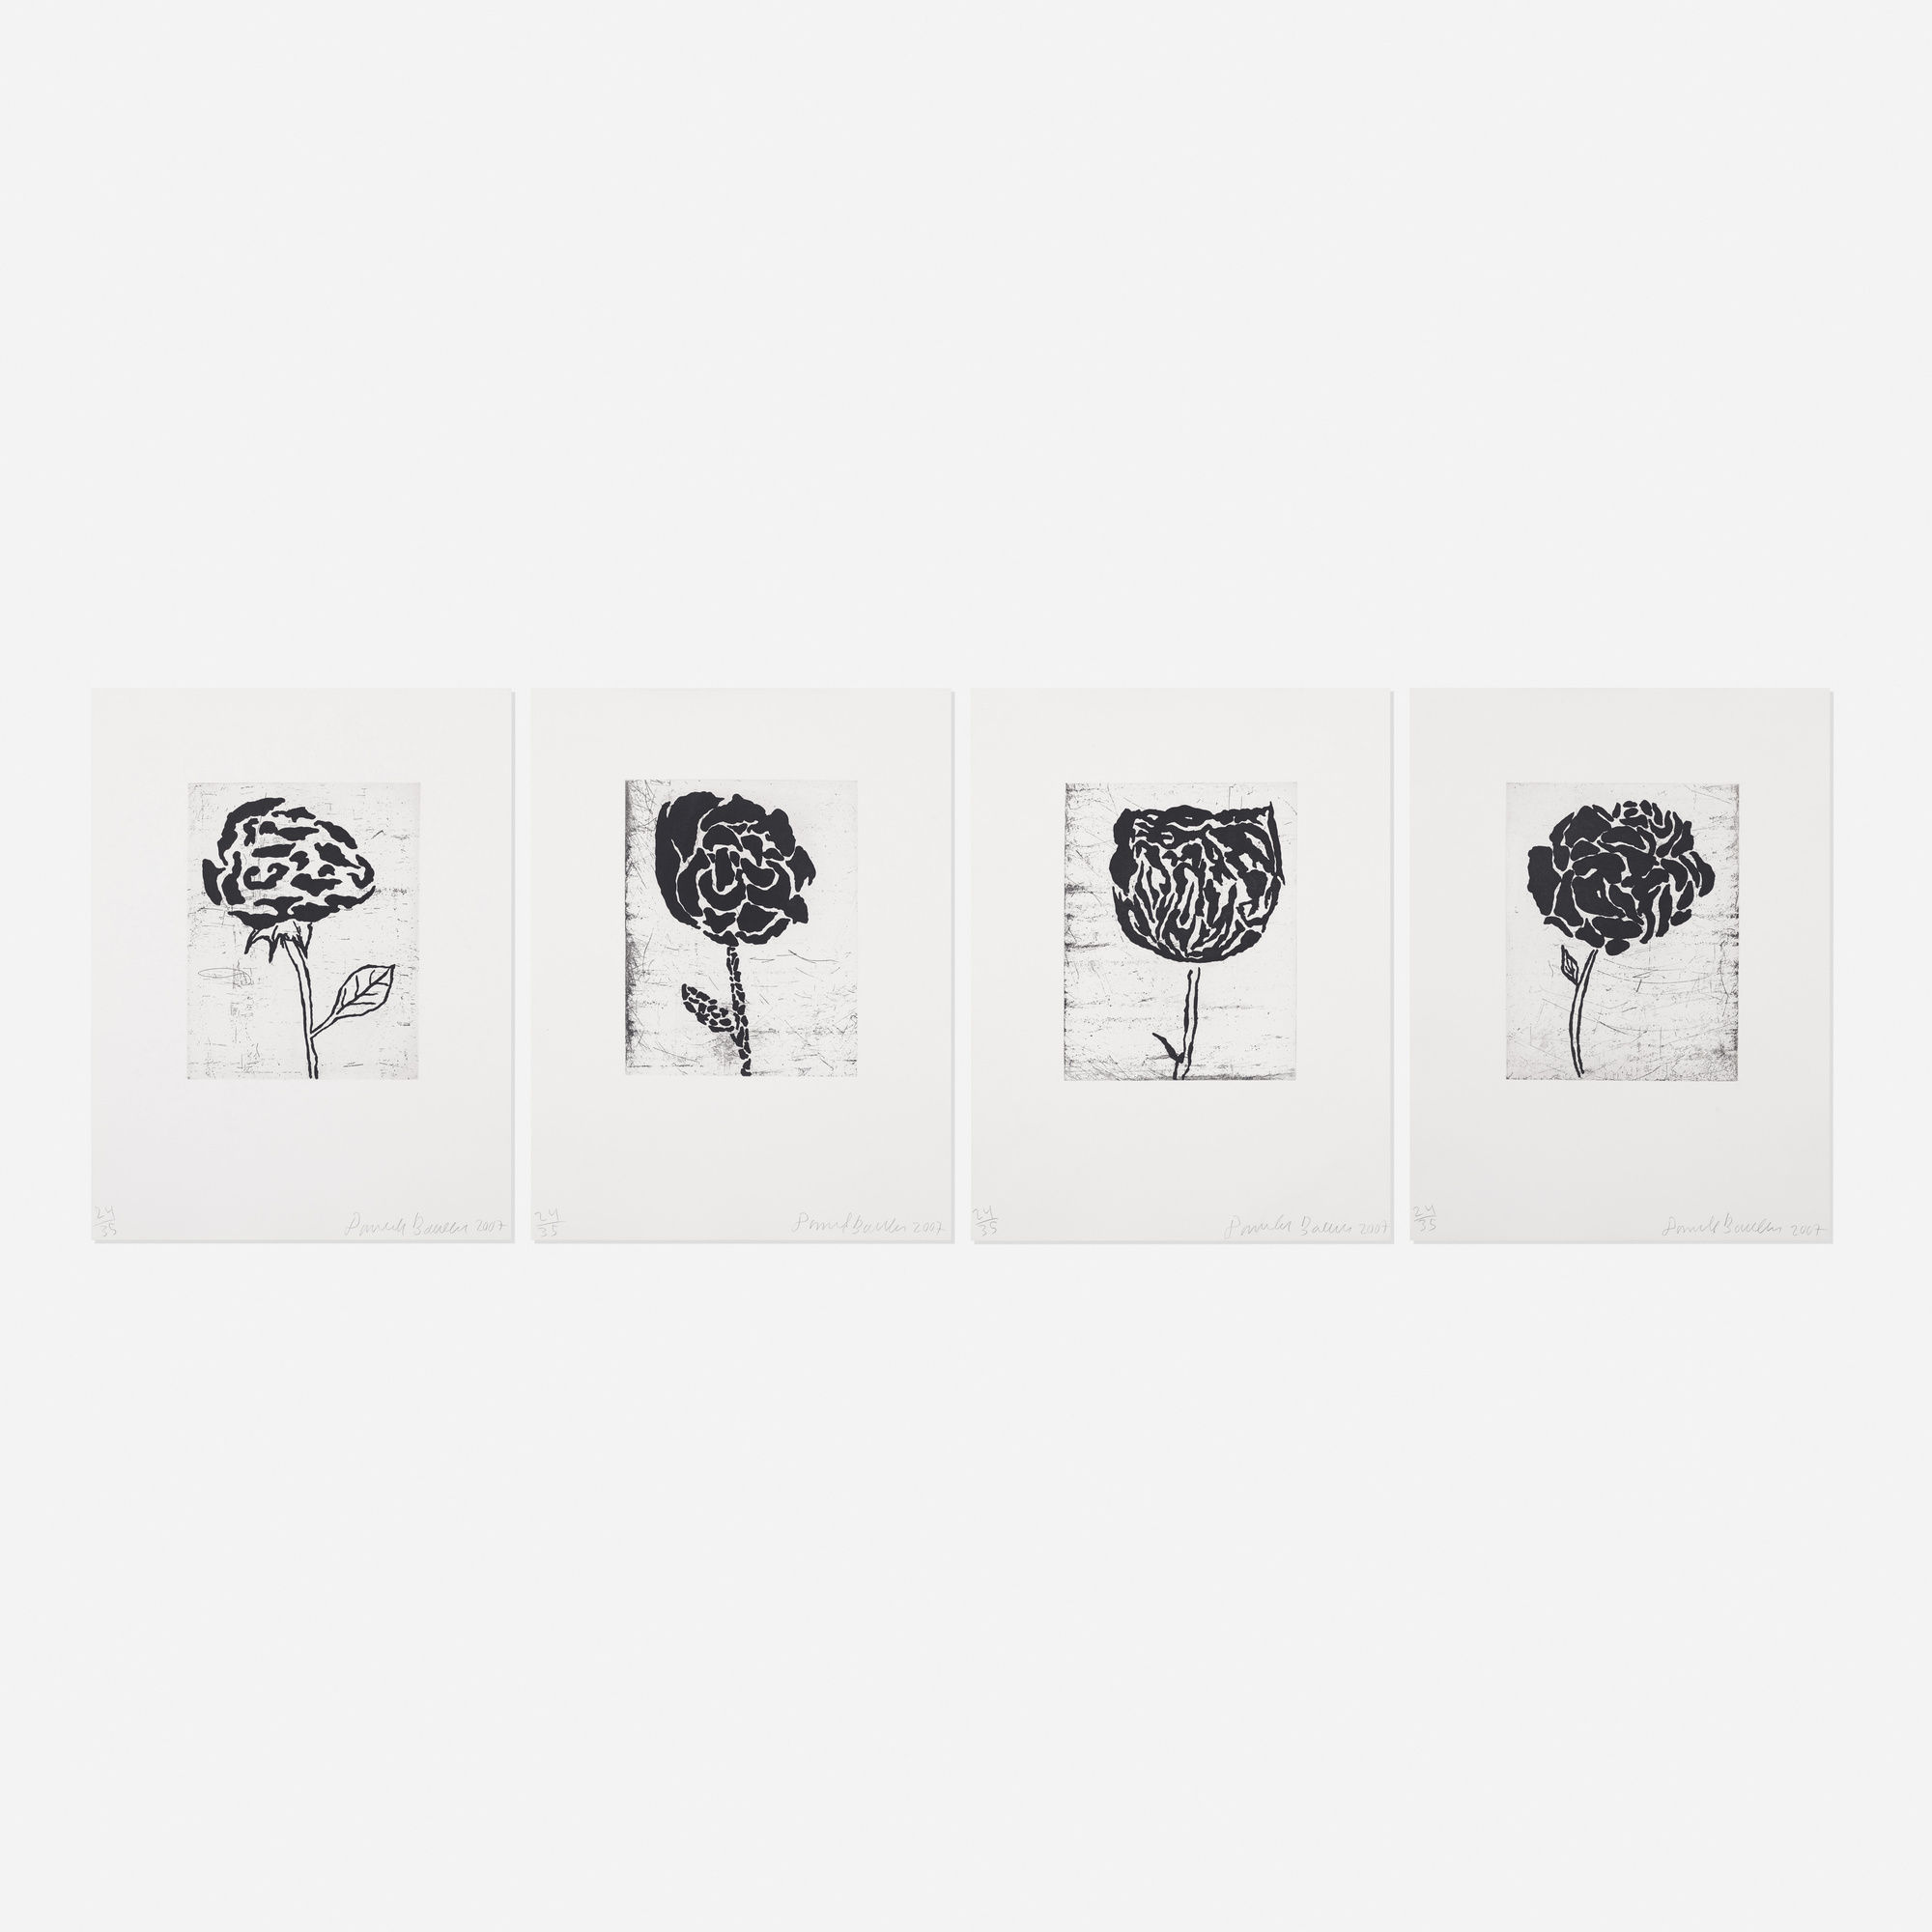 127: Donald Baechler / II, III, IV and V (from the Five Flowers series) (1 of 1)